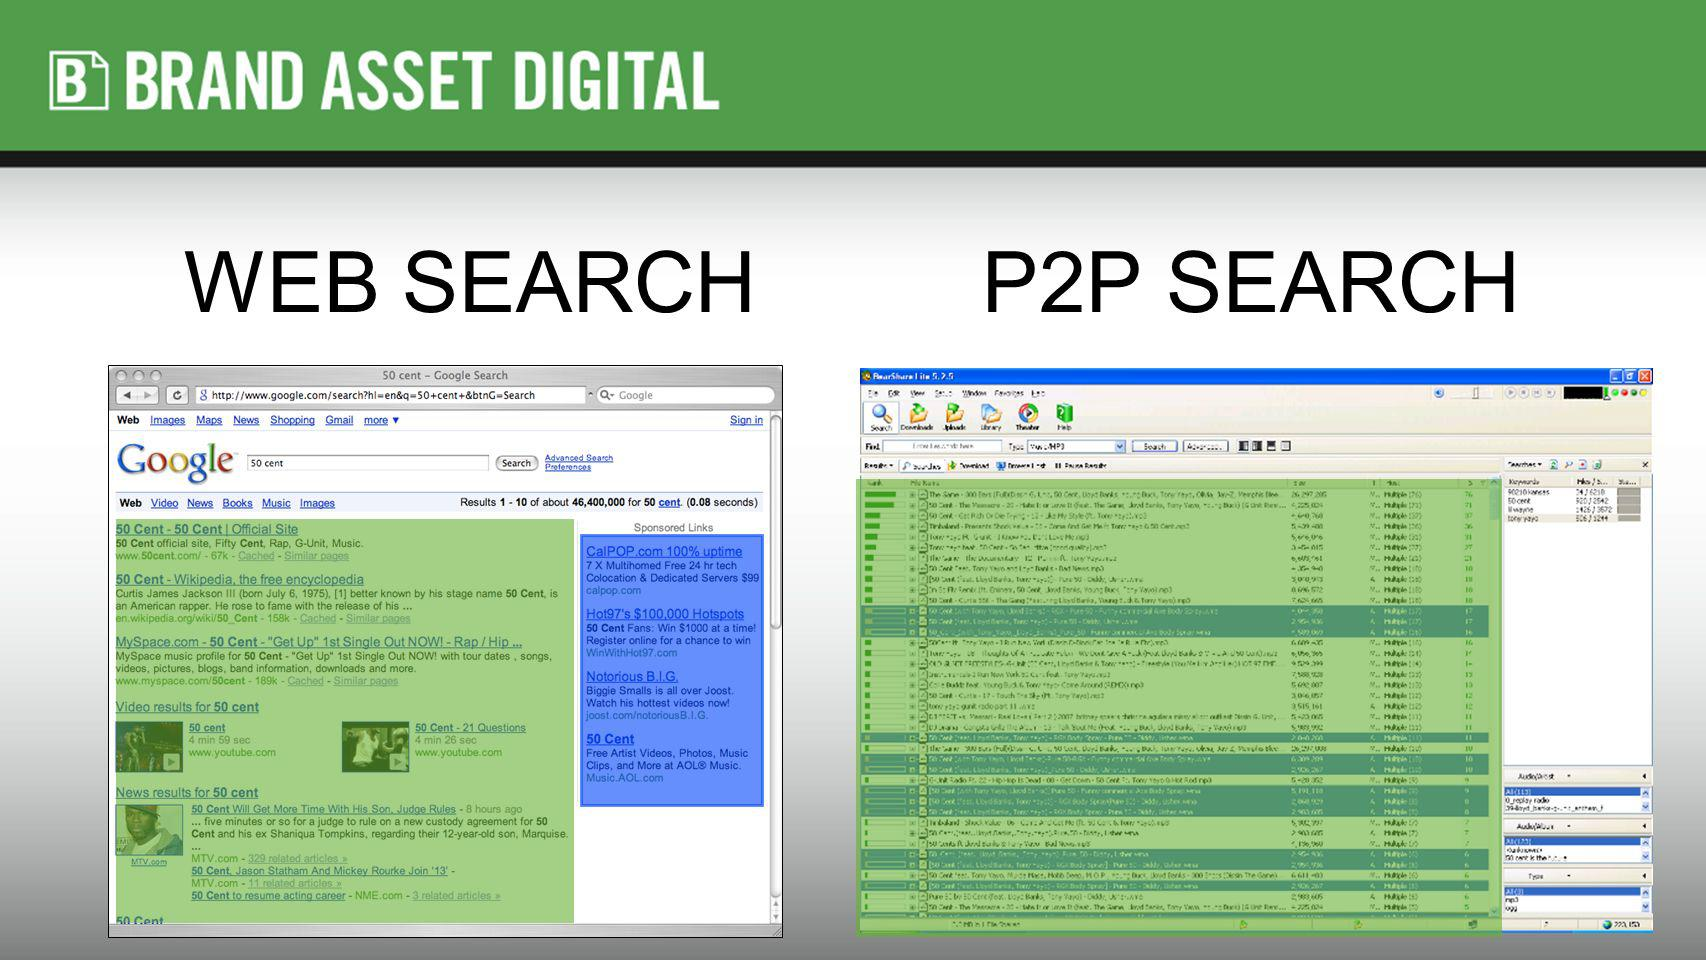 WEB SEARCHP2P SEARCH